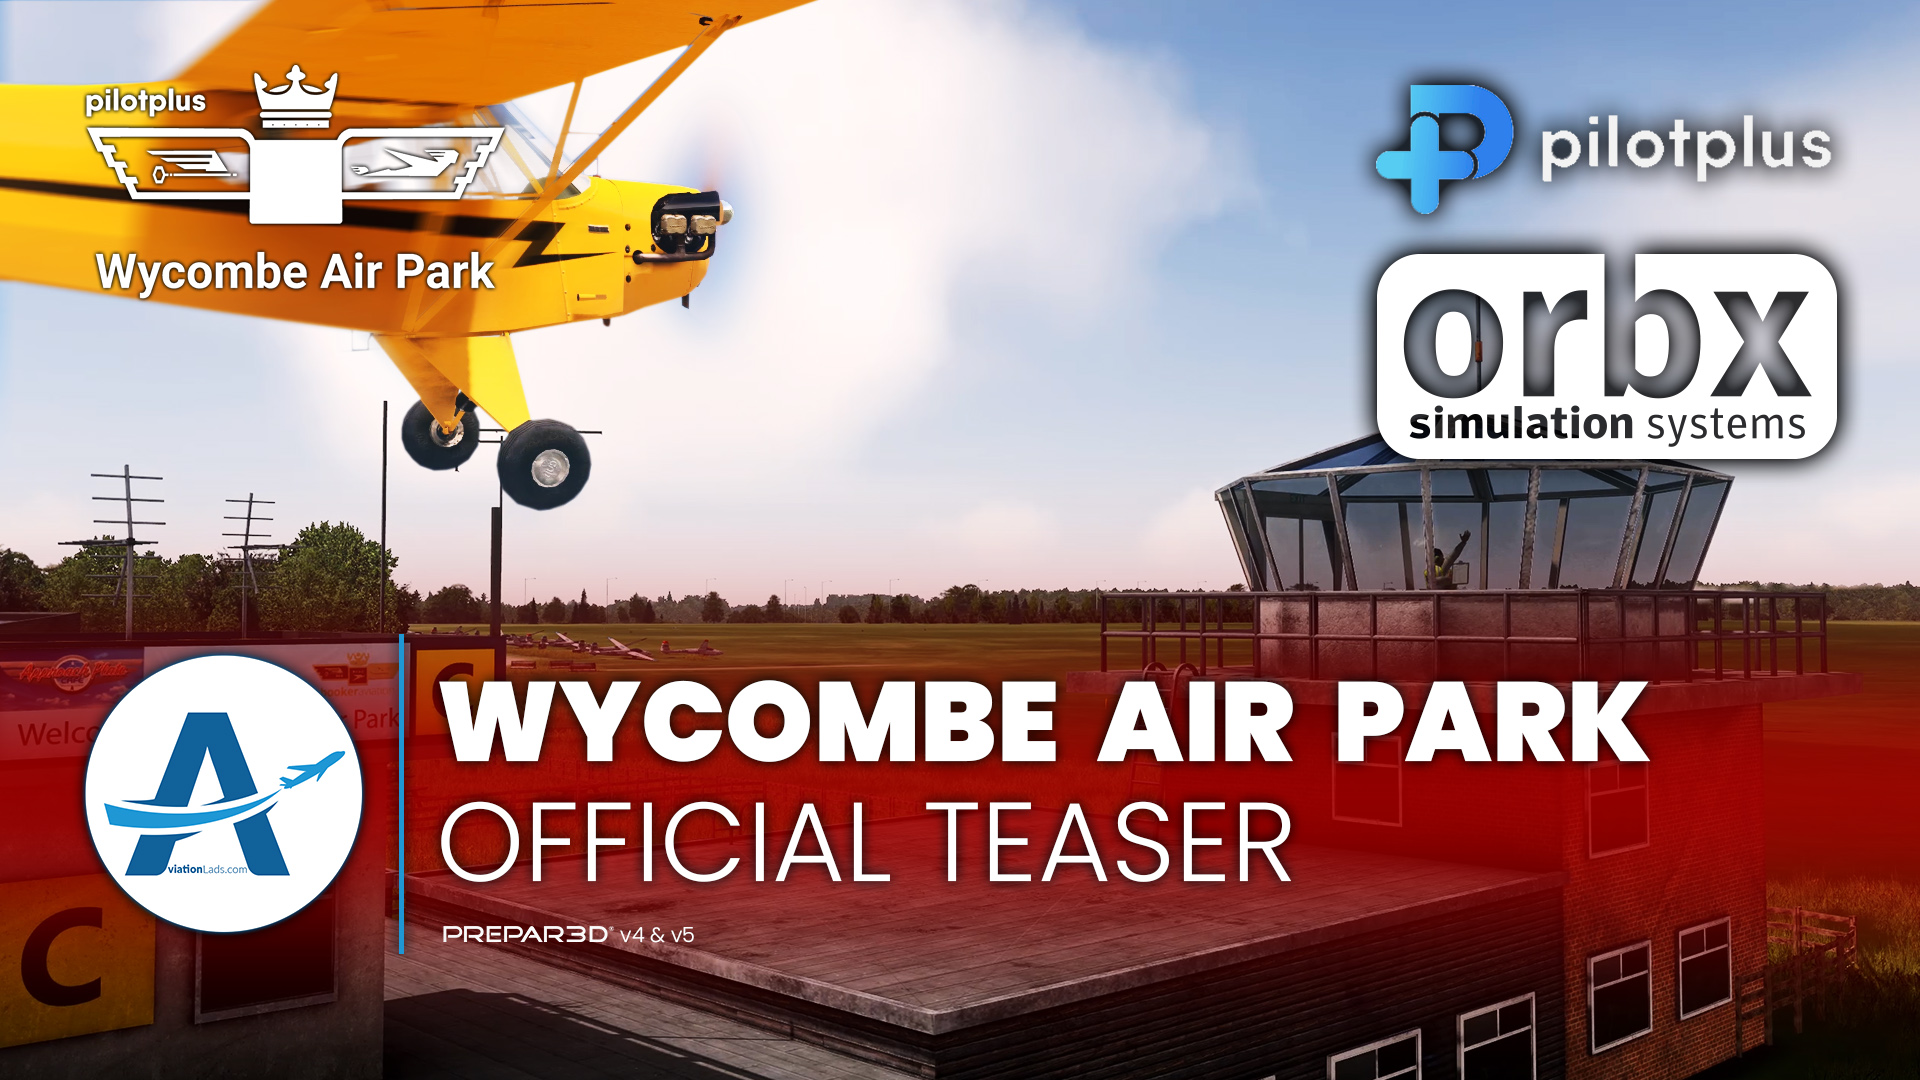 [TEASER] Pilot Plus – Wycombe AirPark